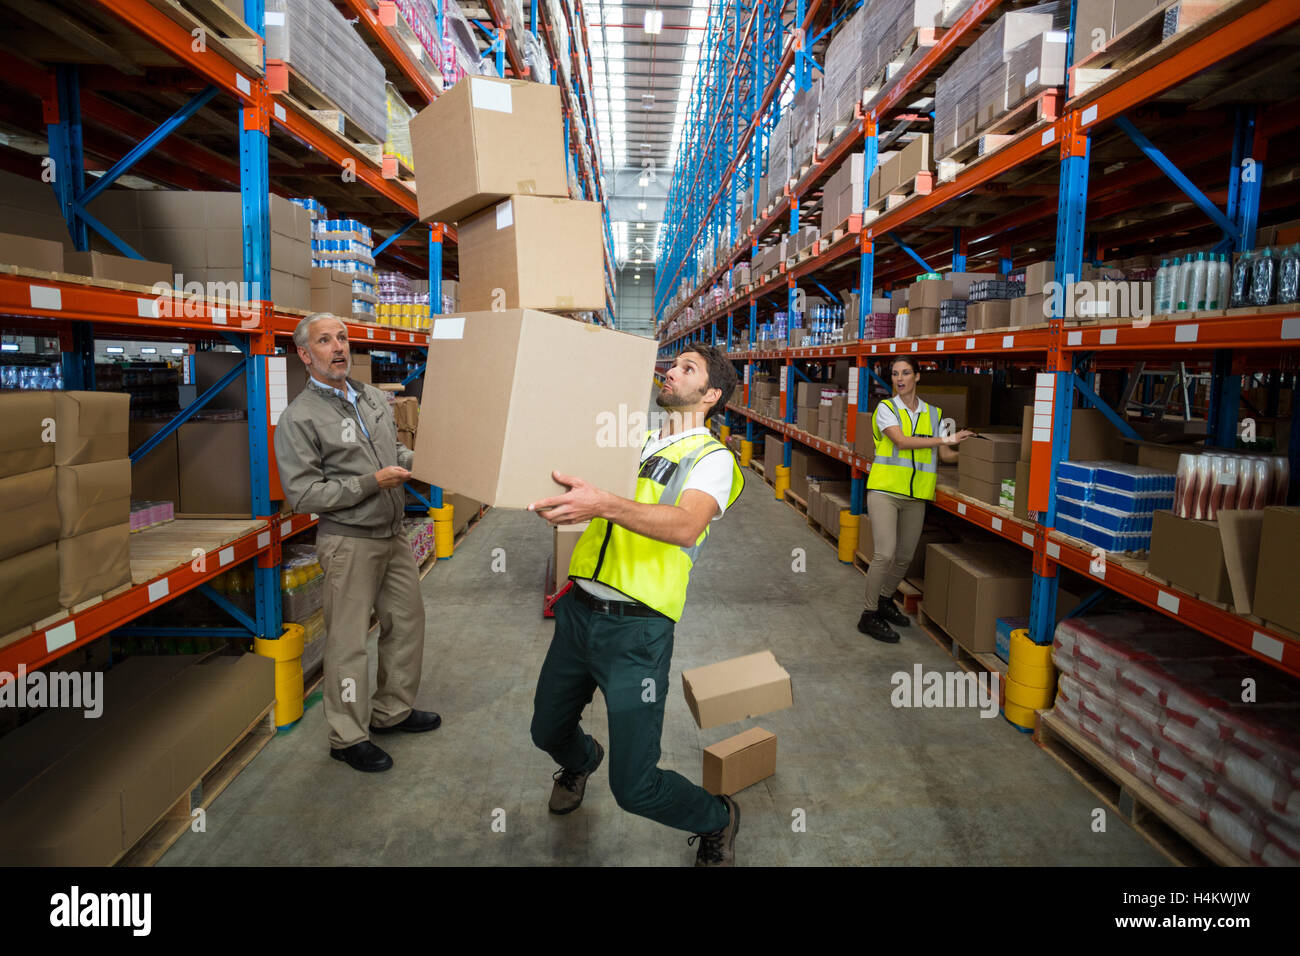 Worker losing his balance while carrying cardboard boxes - Stock Image